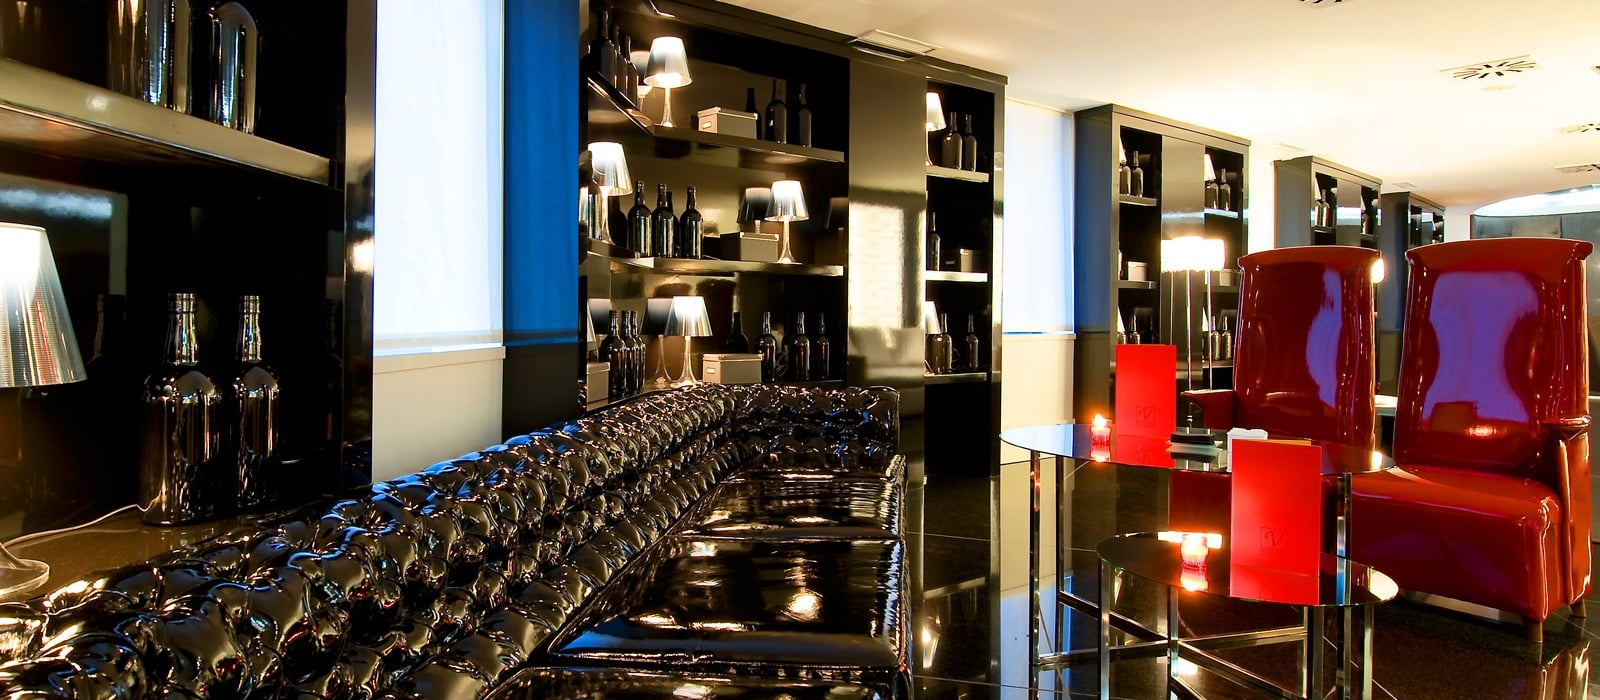 Servizi Hotel Madrid Via 66 - Vincci Hoteles - Bar Lounge